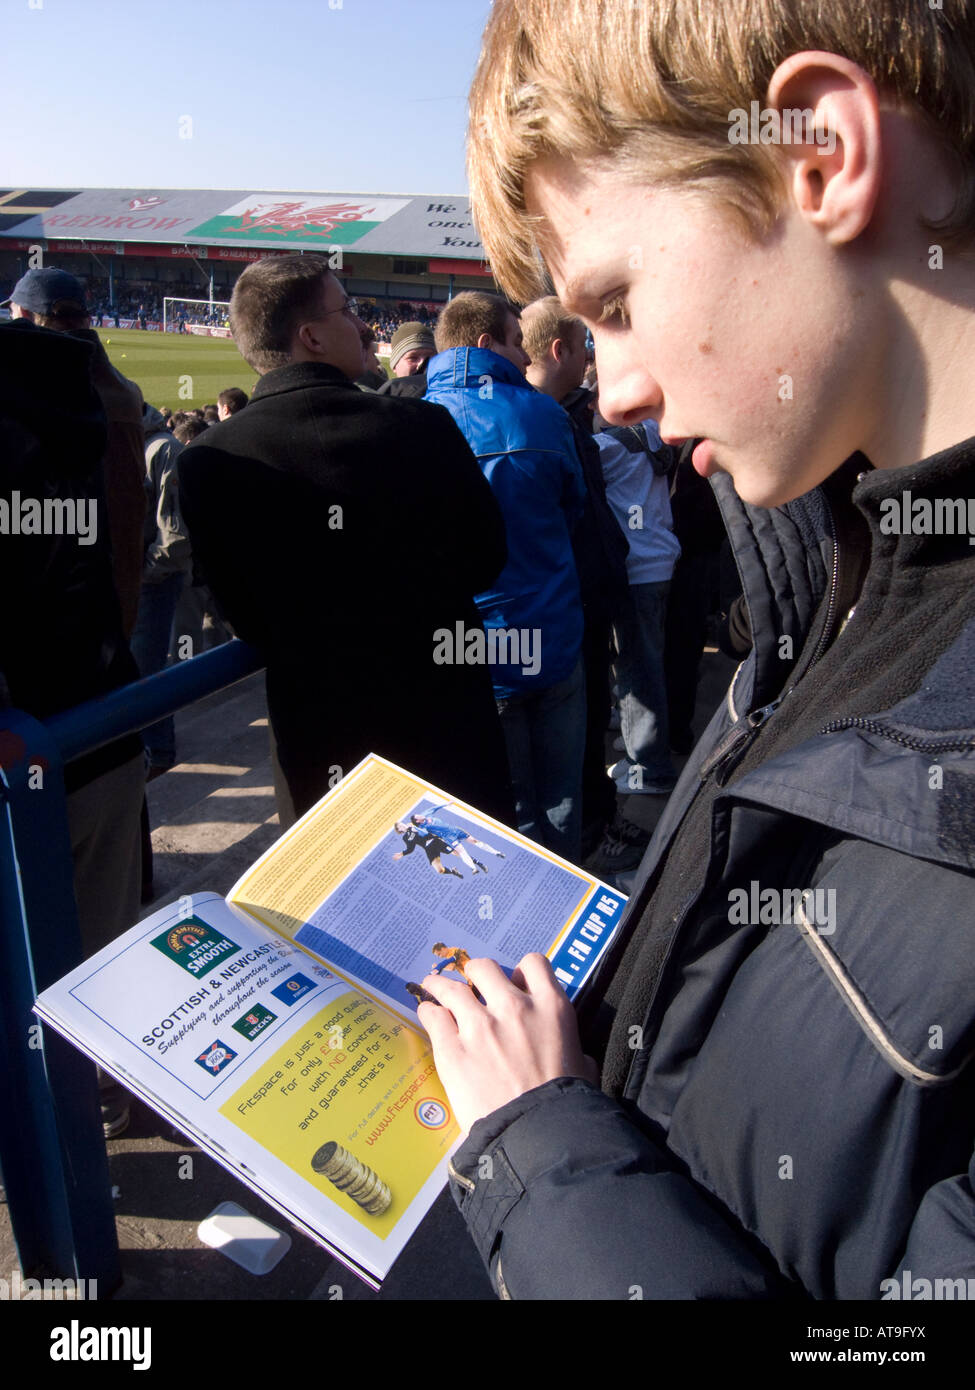 a boy reading a football programme inside Ninian Park Cardiff - Stock Image